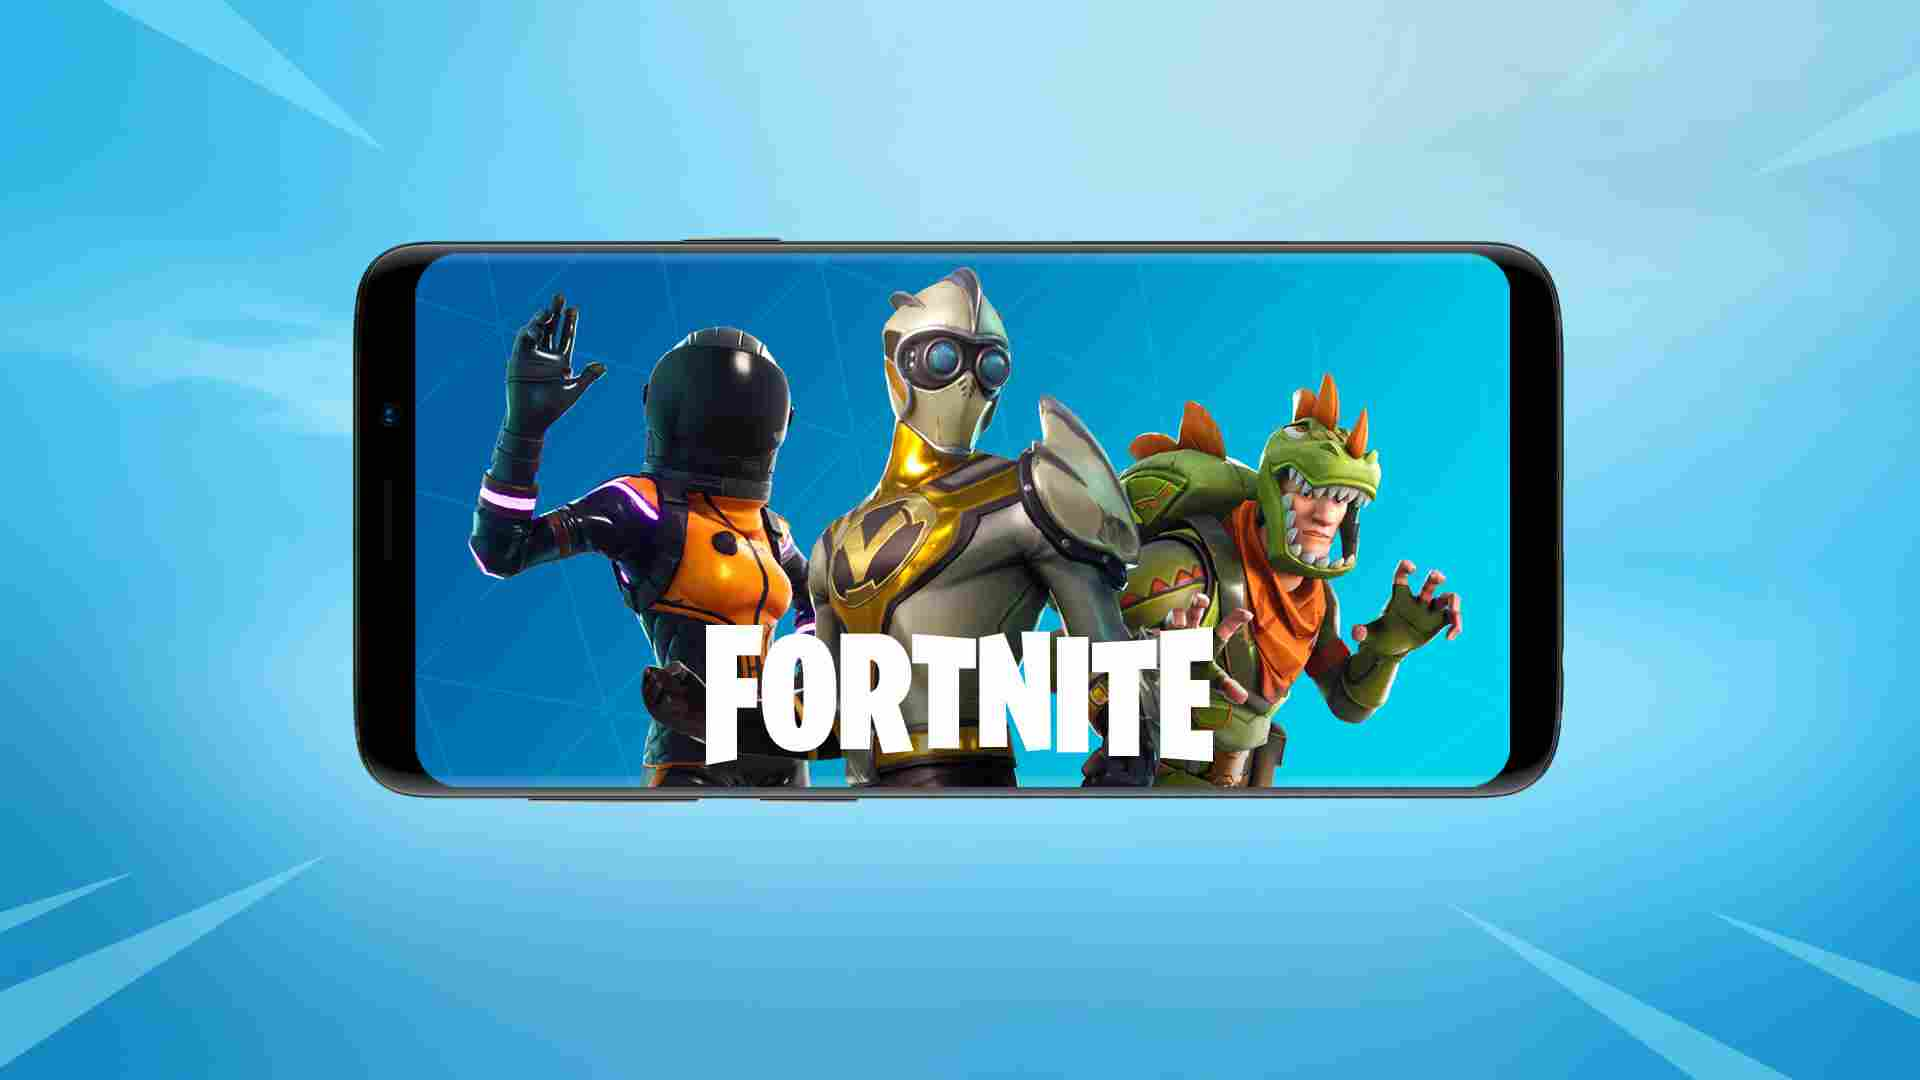 Fortnite 6.31 update adds Gifting to Battle Royale for a limited time